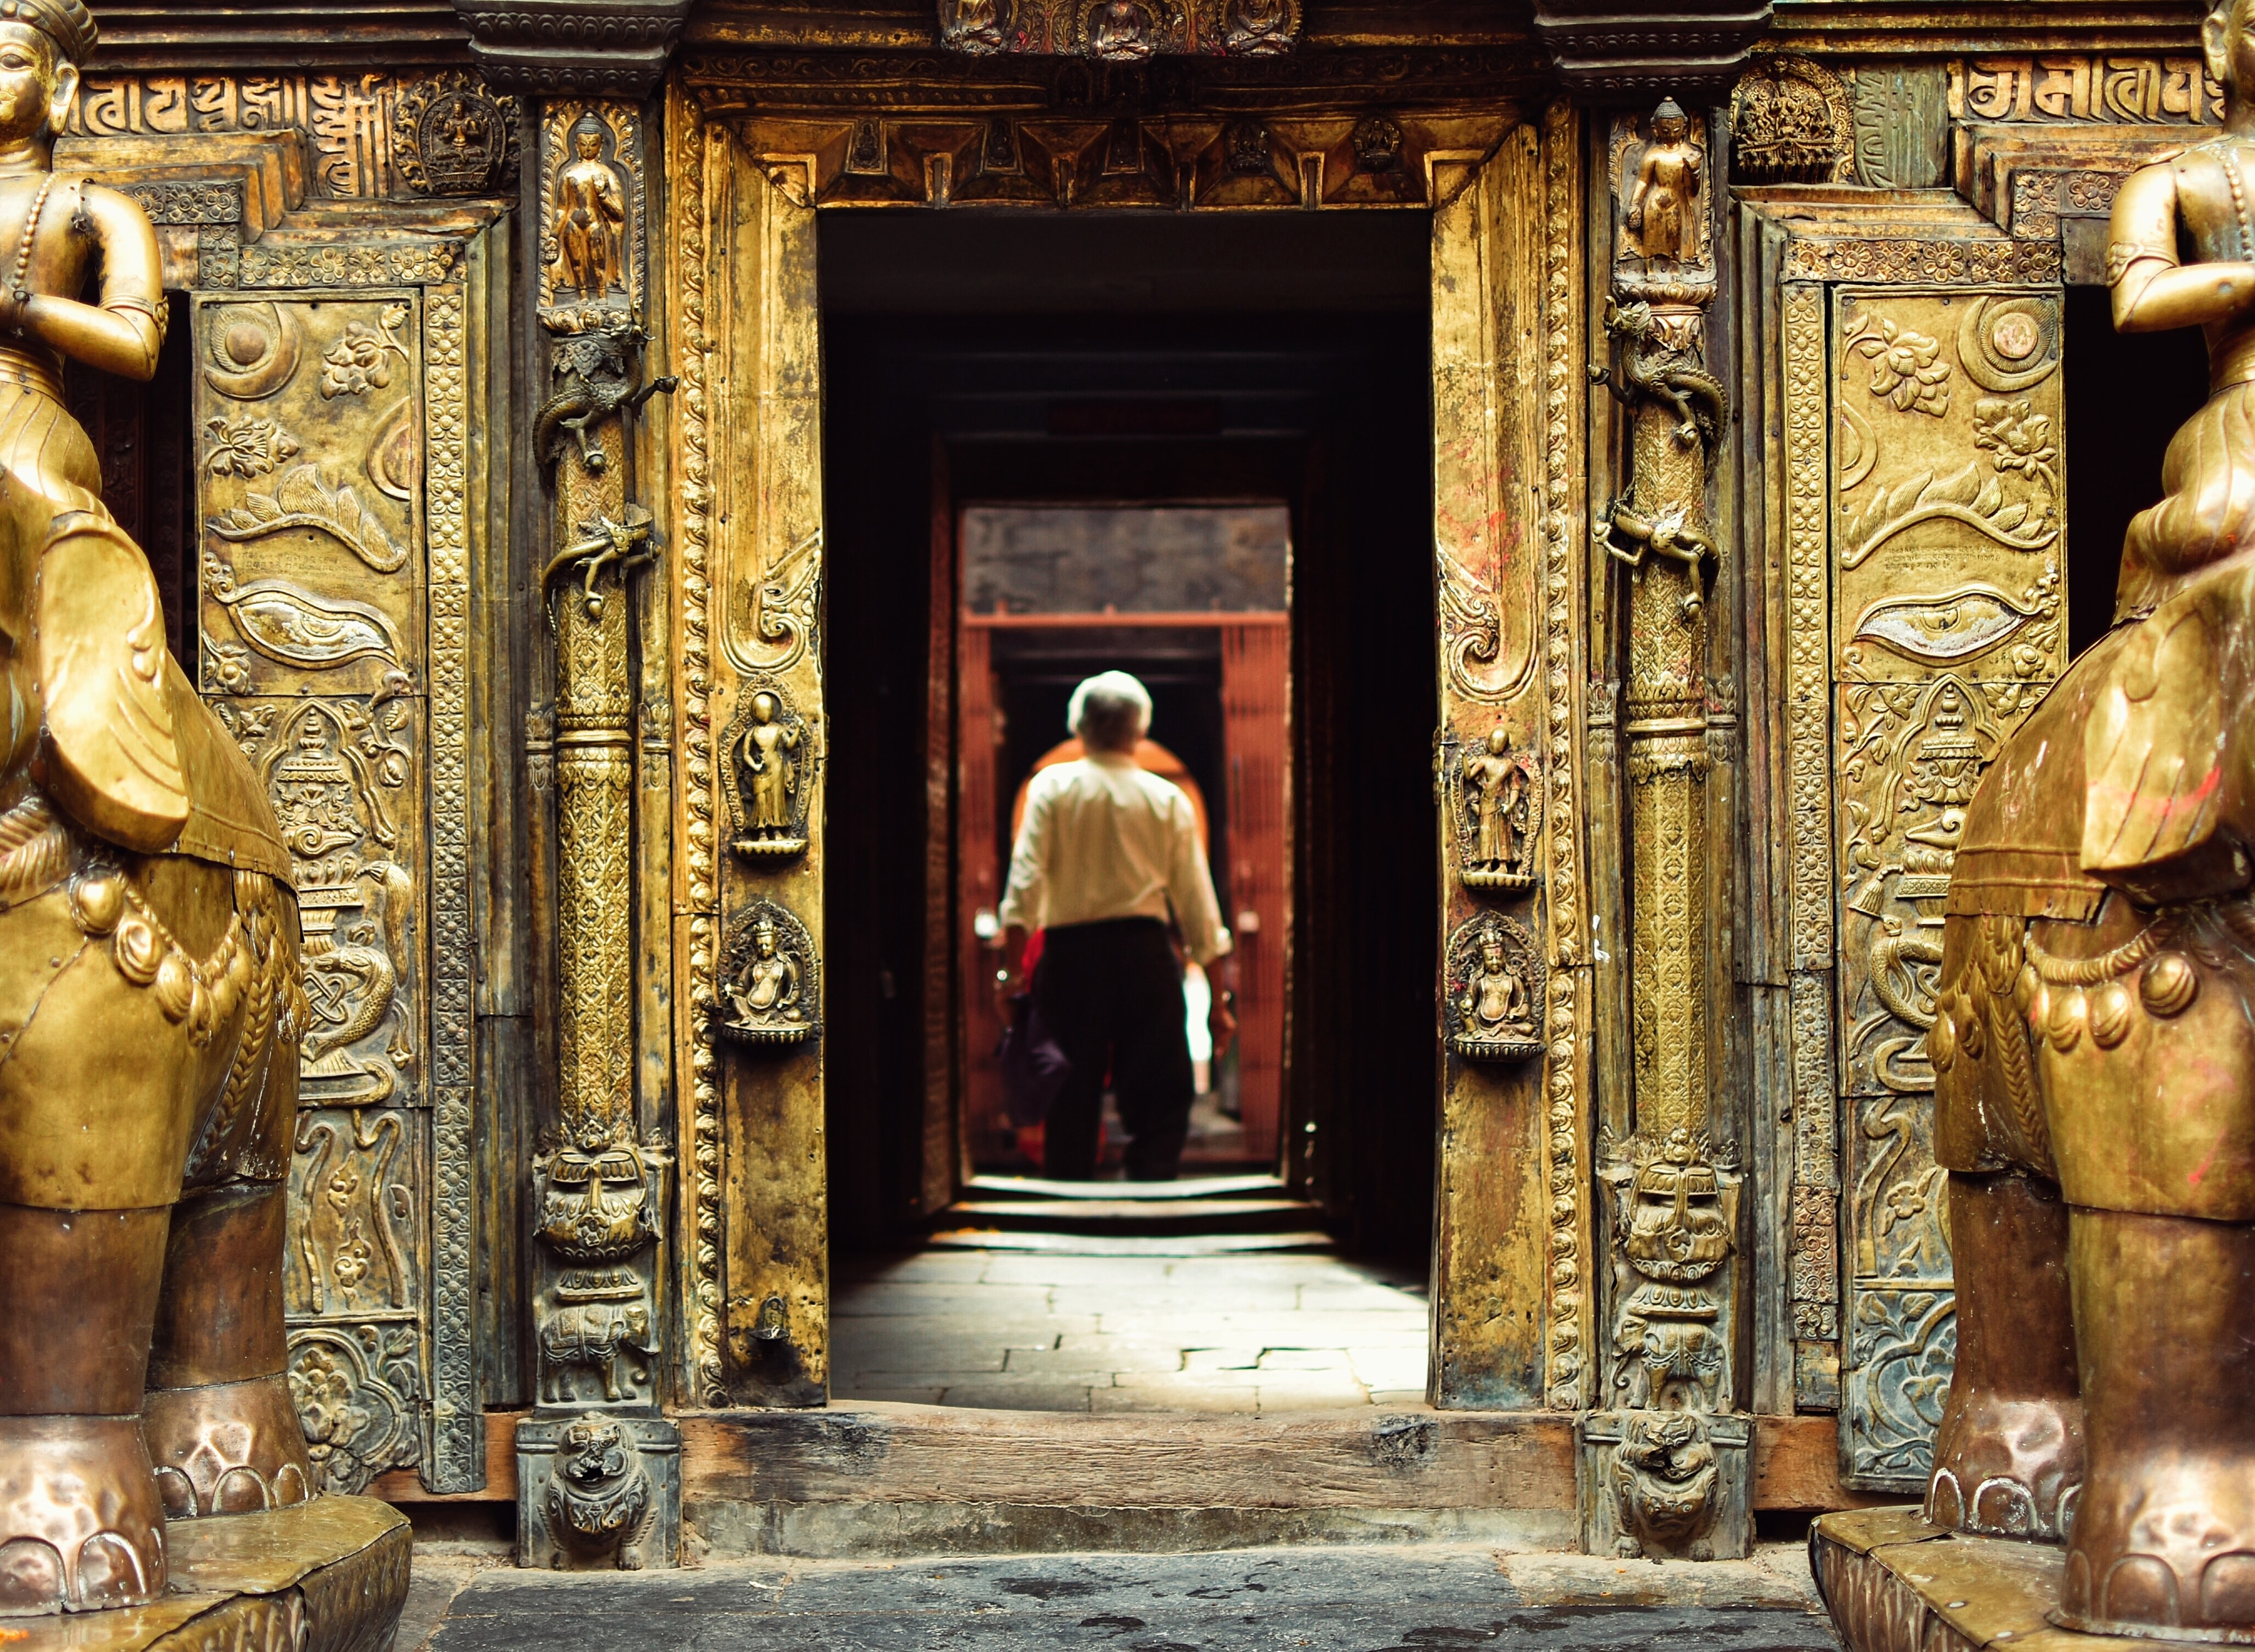 A man in a white shirt standing back to camera in the doorway of a Buddhist temple